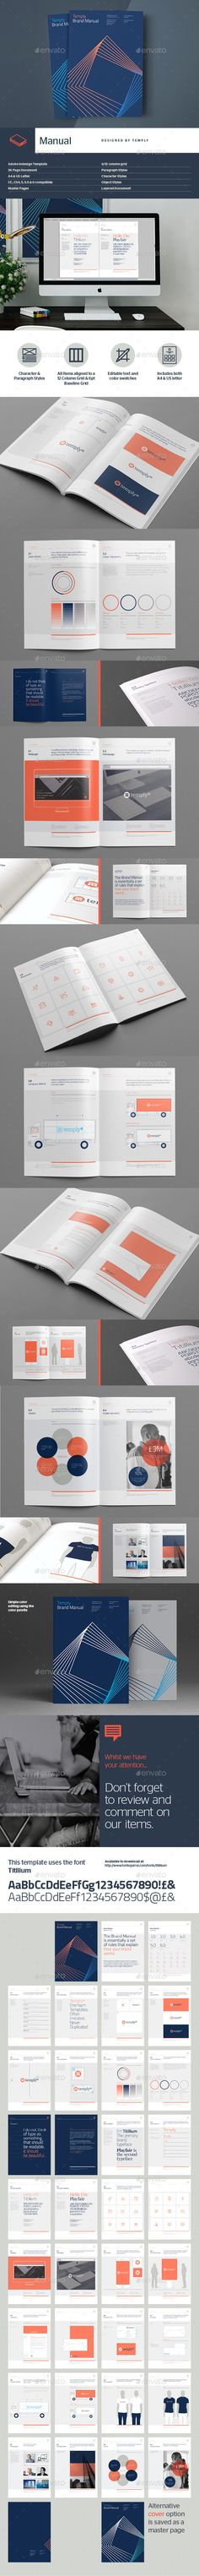 Brand Manual Template vol3 Brand manual - it manual template